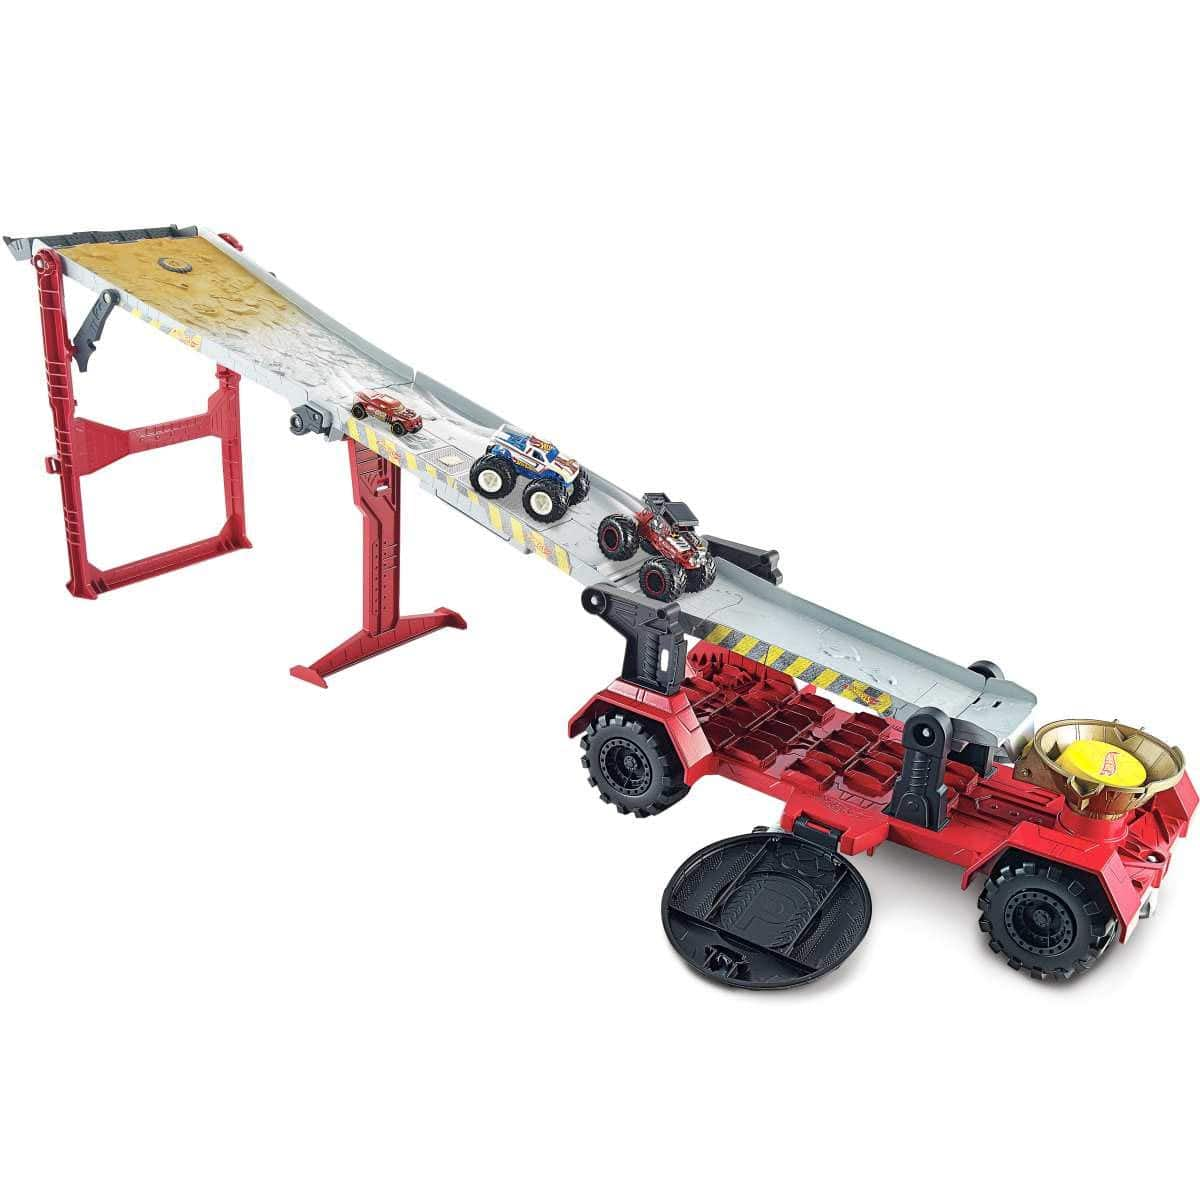 Hot Wheels Monster Trucks Downhill Race & Go Playset $24 at Walmart w/ Free Store Pickup or Free Shipping w/ Prime